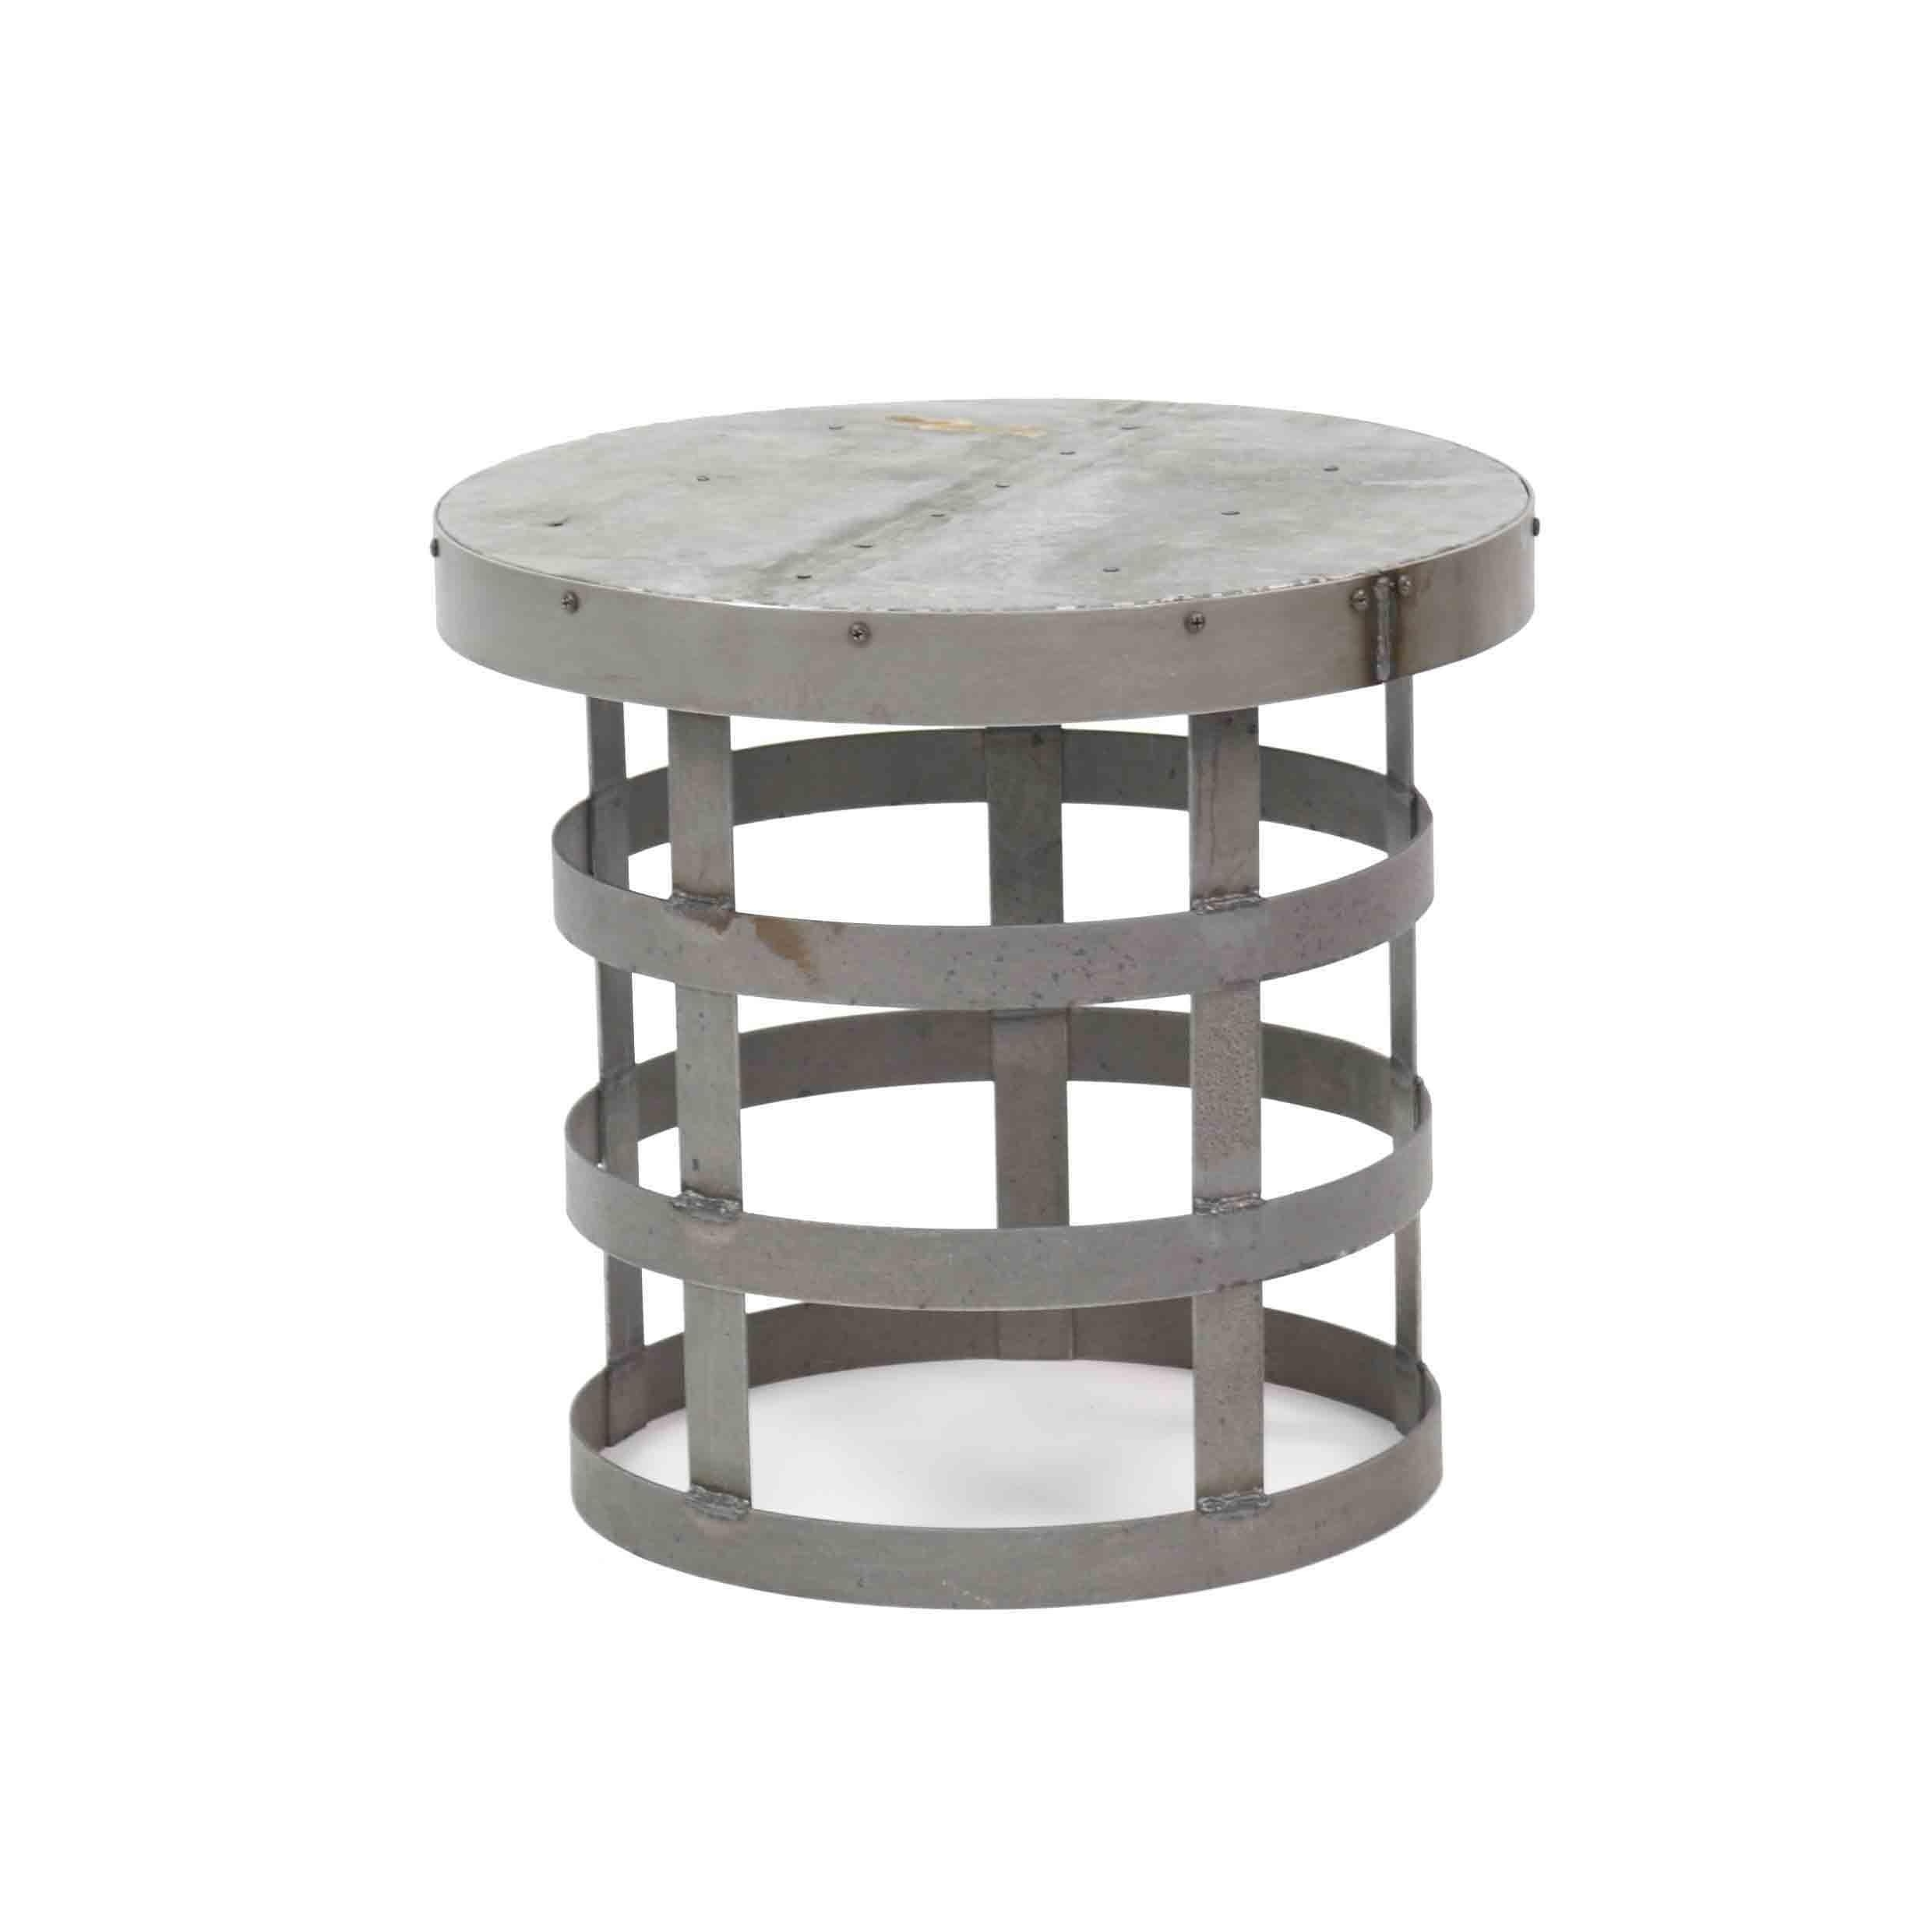 attractive round metal accent table with small occasional side tables iron teal kitchen decor bath and beyond ice cream maker large coffee storage reclaimed wood nesting